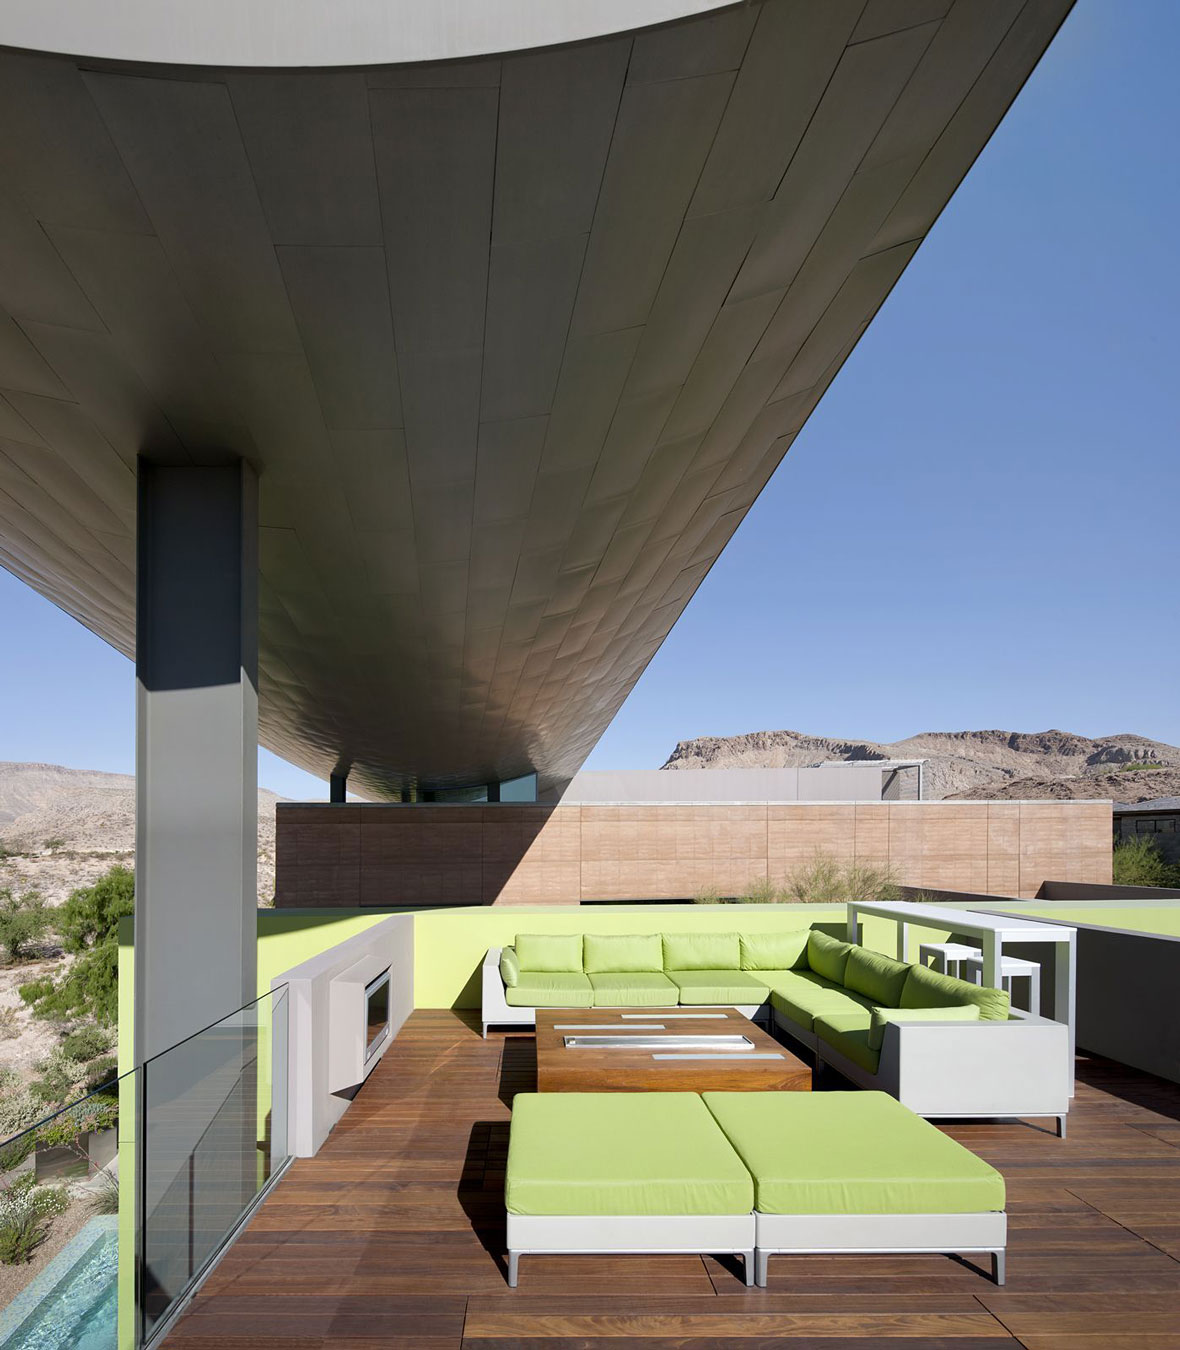 Roof Terrace, Green Furniture, Massive Modern Home in Las Vegas